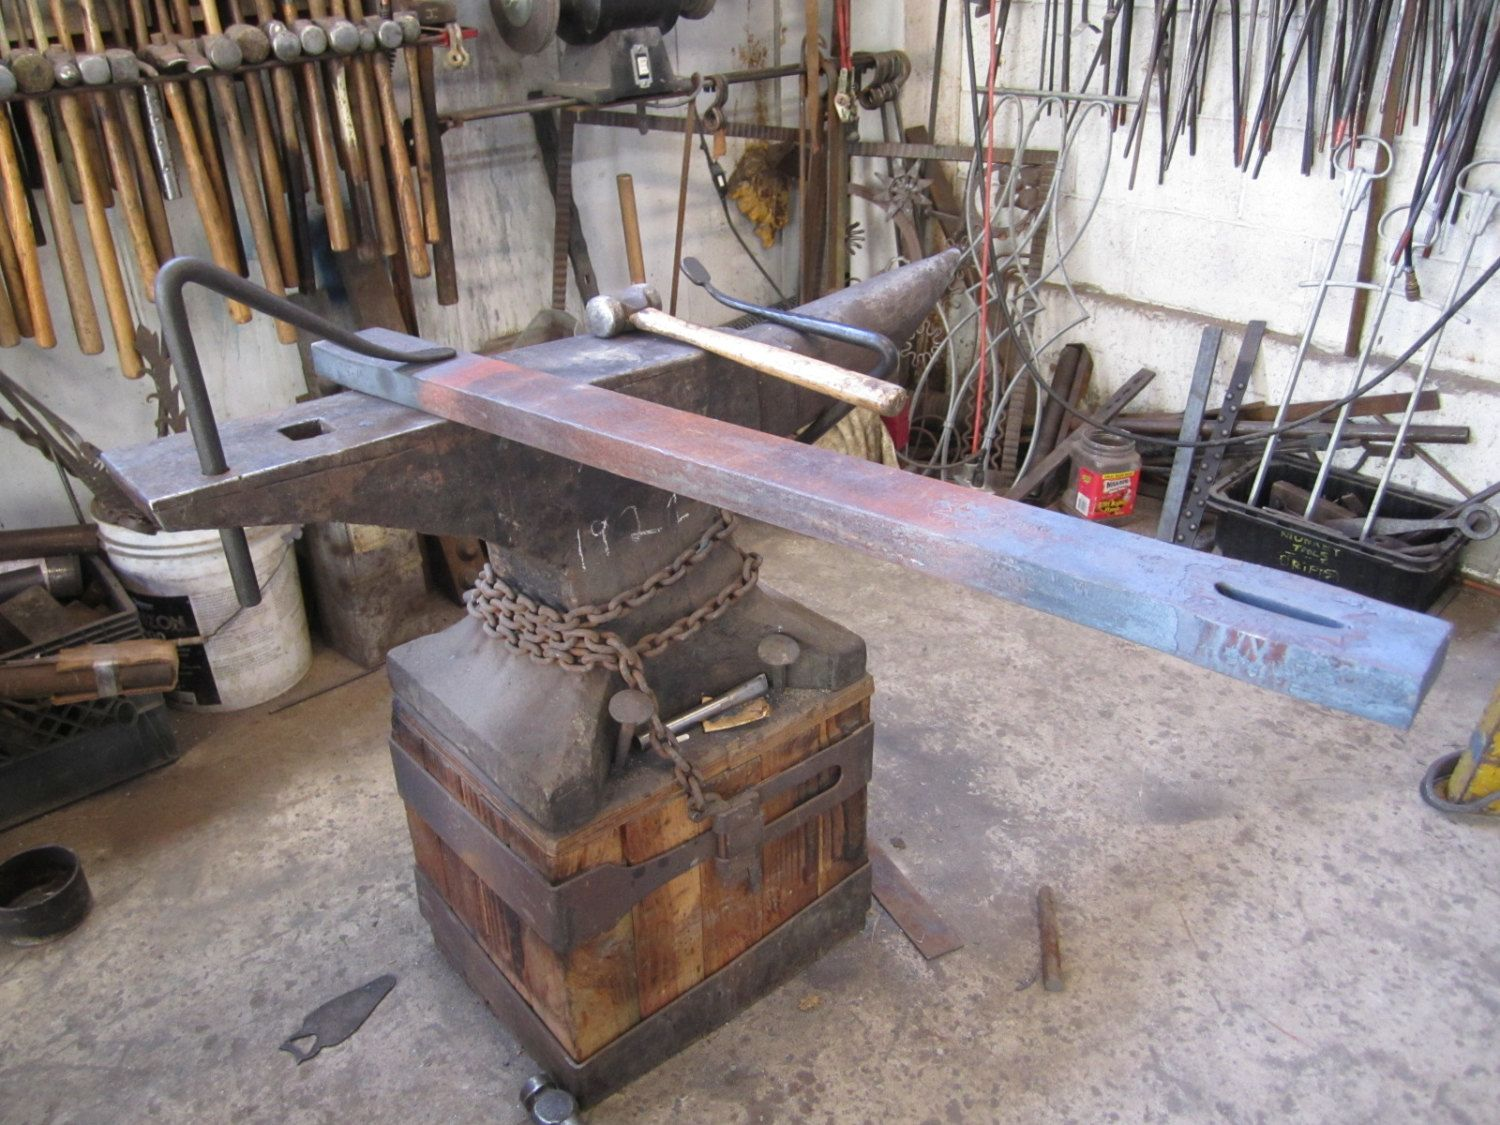 Now that's a sweet anvil!